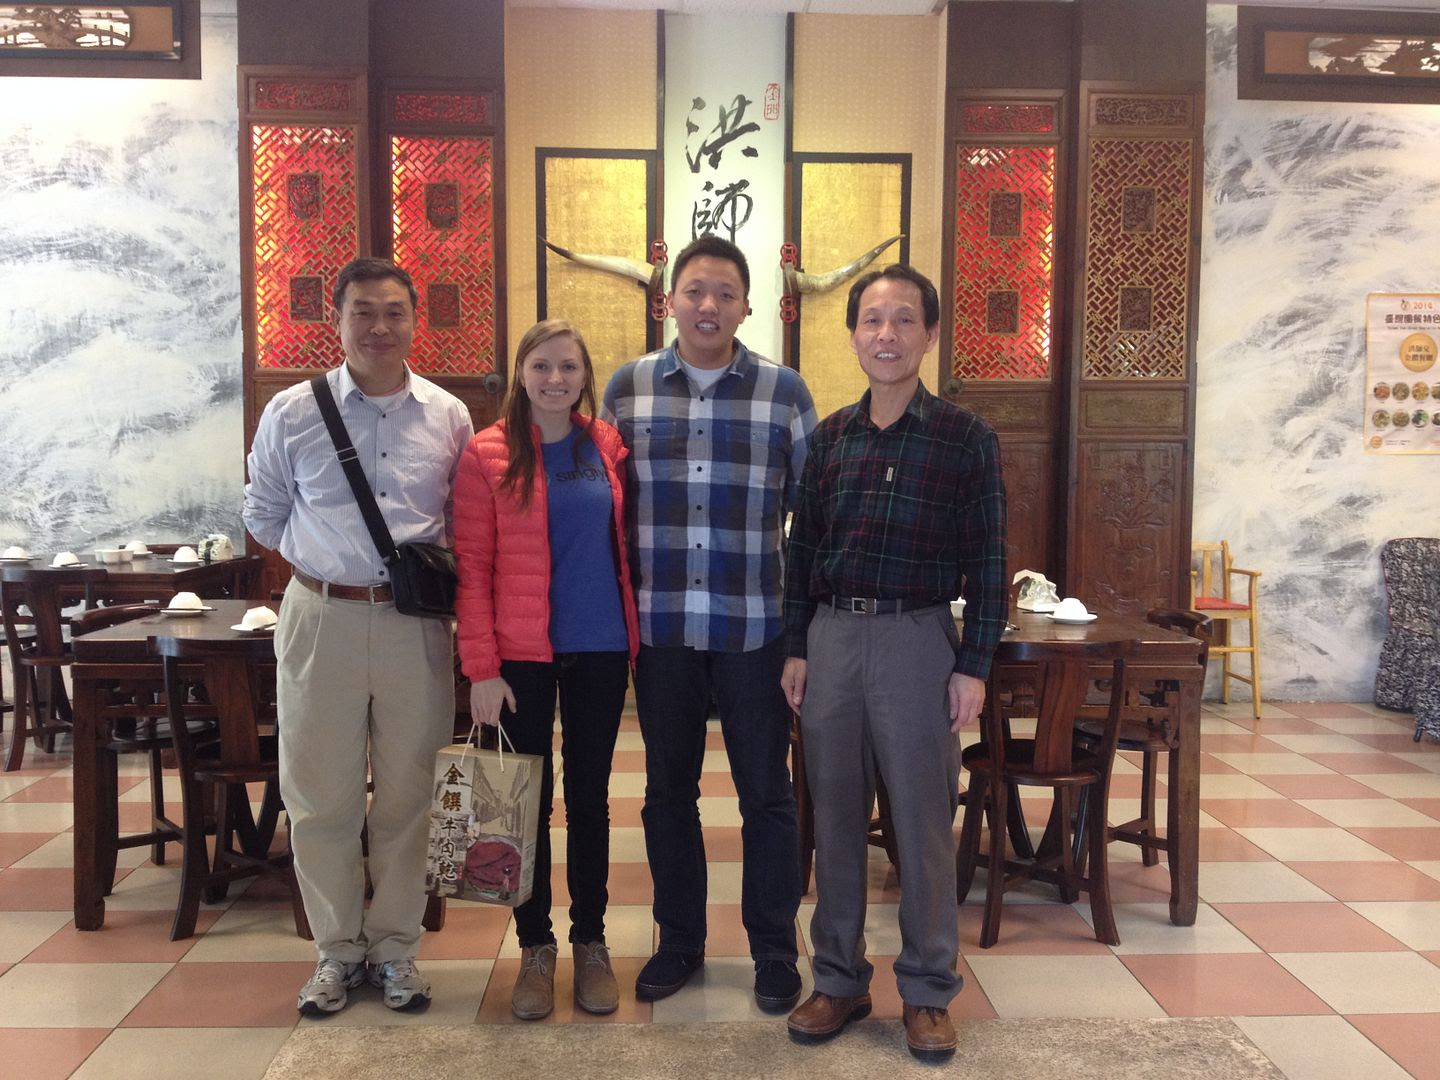 Robby and the Teacher With Us and Beef Jerky After Lunch photo 2014-01-03132019_zpsebaa8ffe.jpg